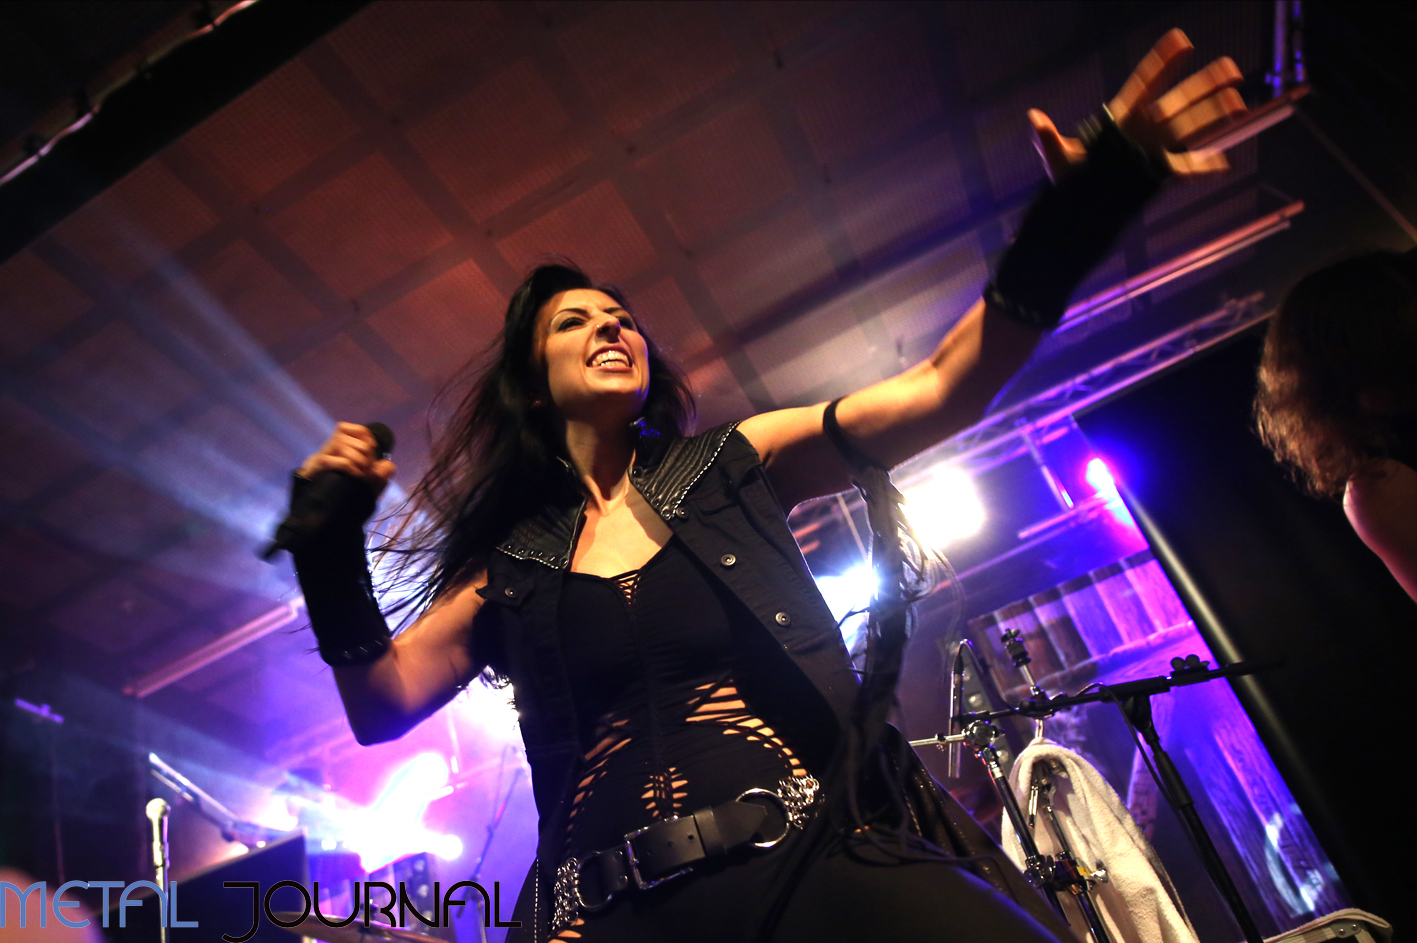 unleash the archers - metal journal 2017 pic 3